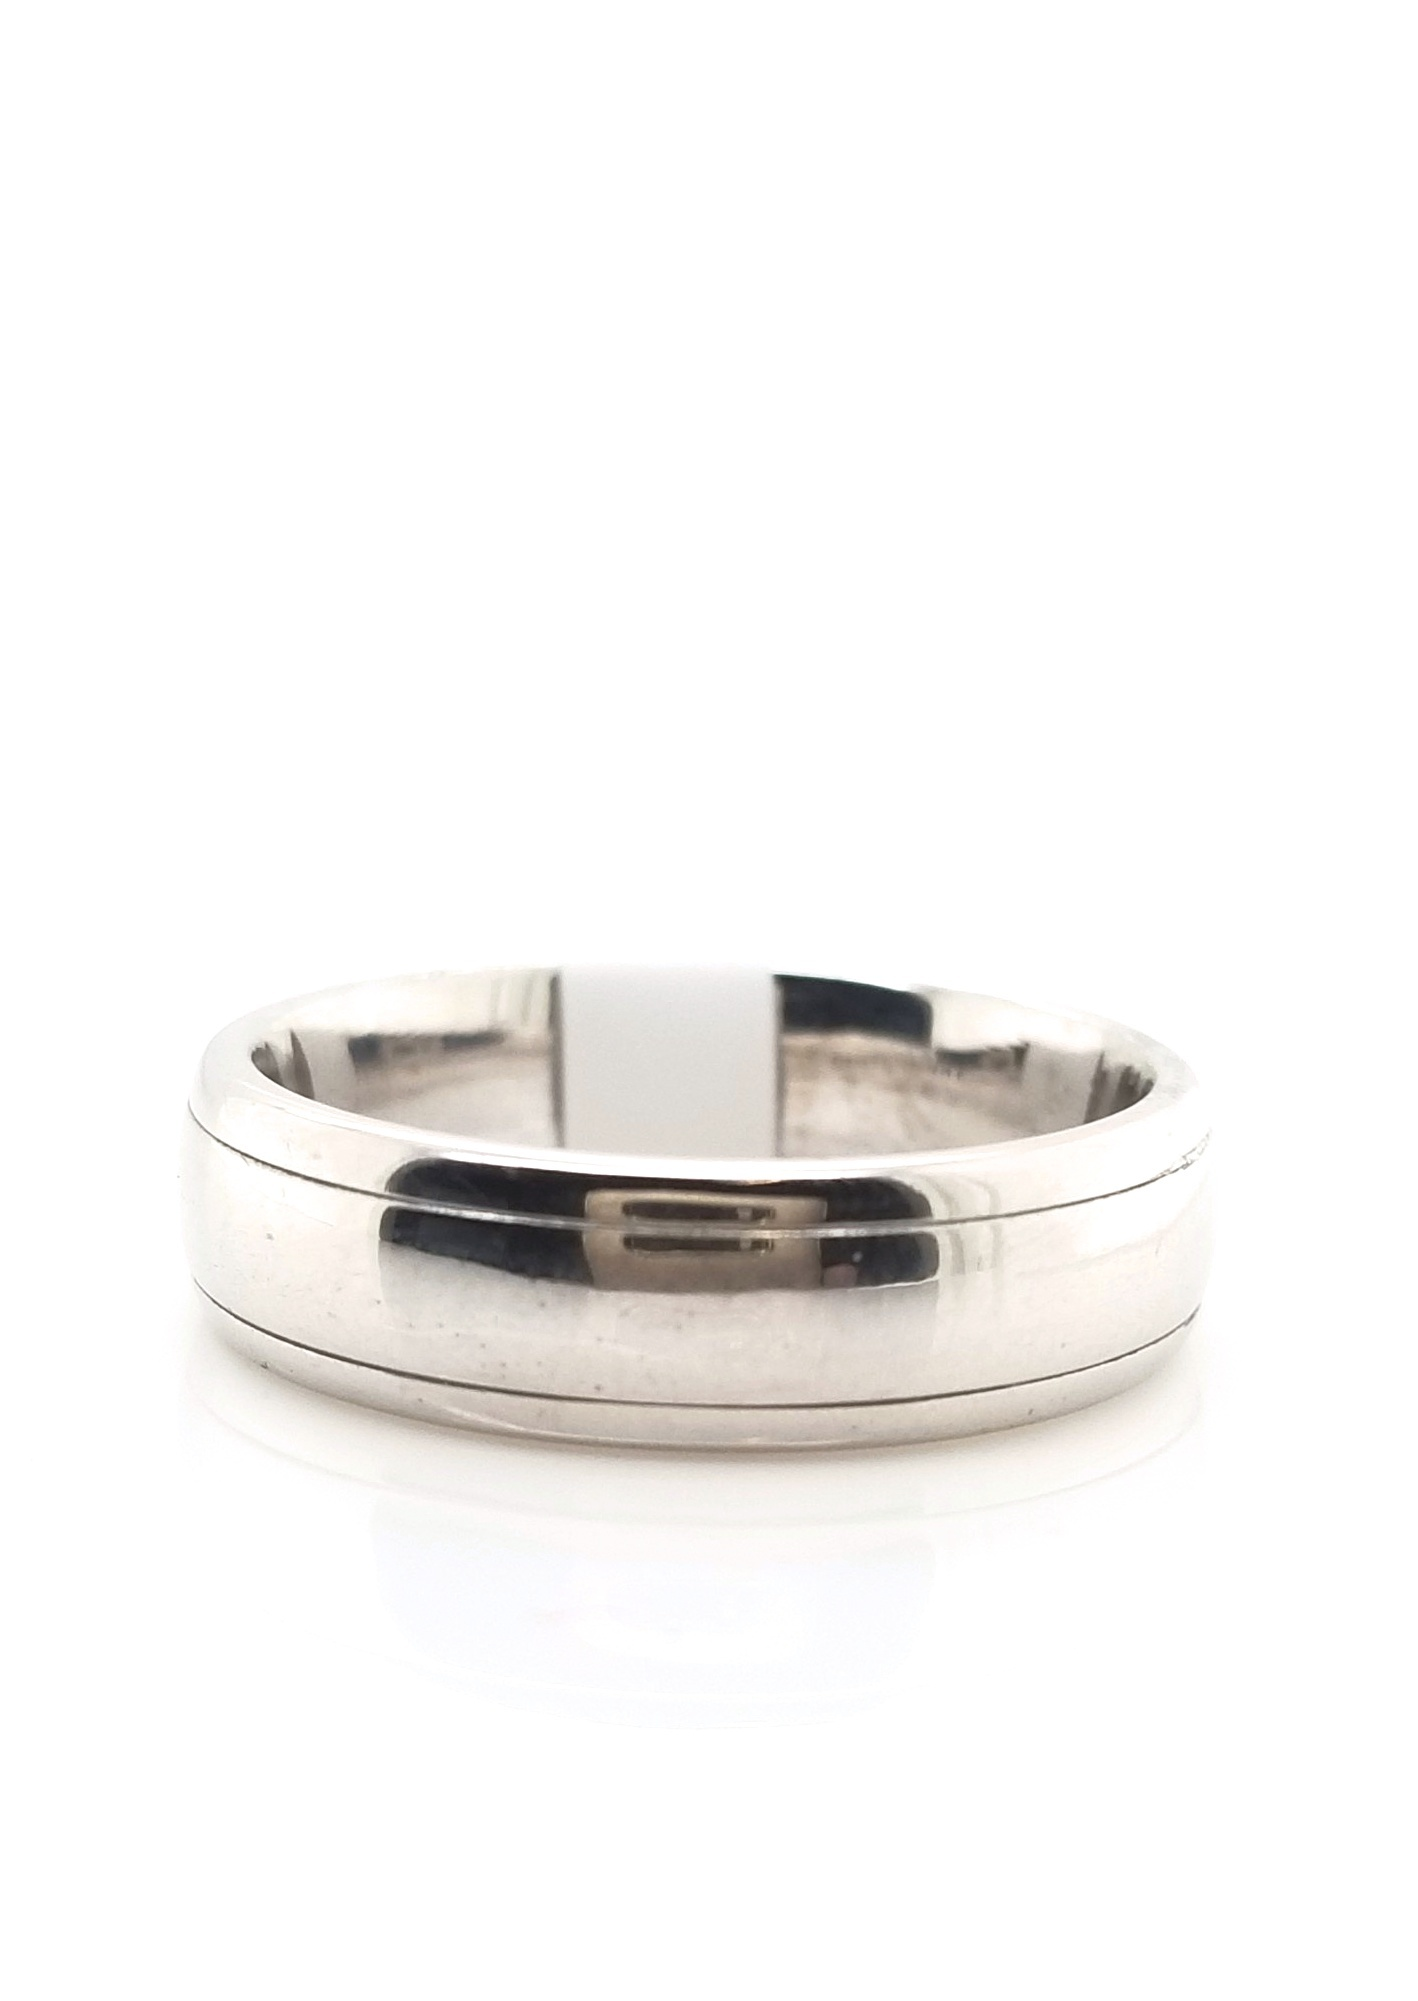 18kt wg half round band with edge size 8.5